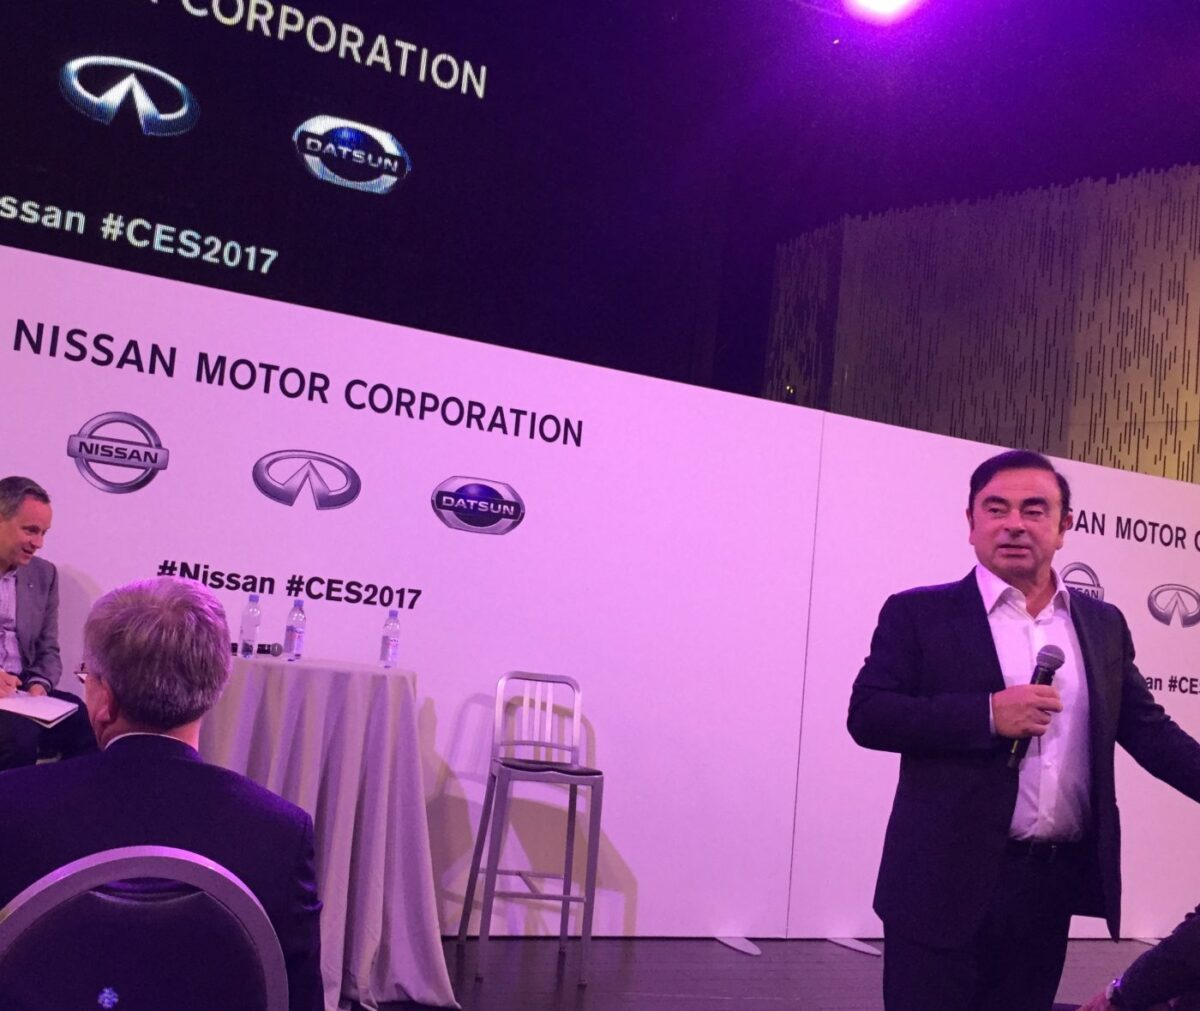 Nissan Infiniti CEO Carlos Ghosn